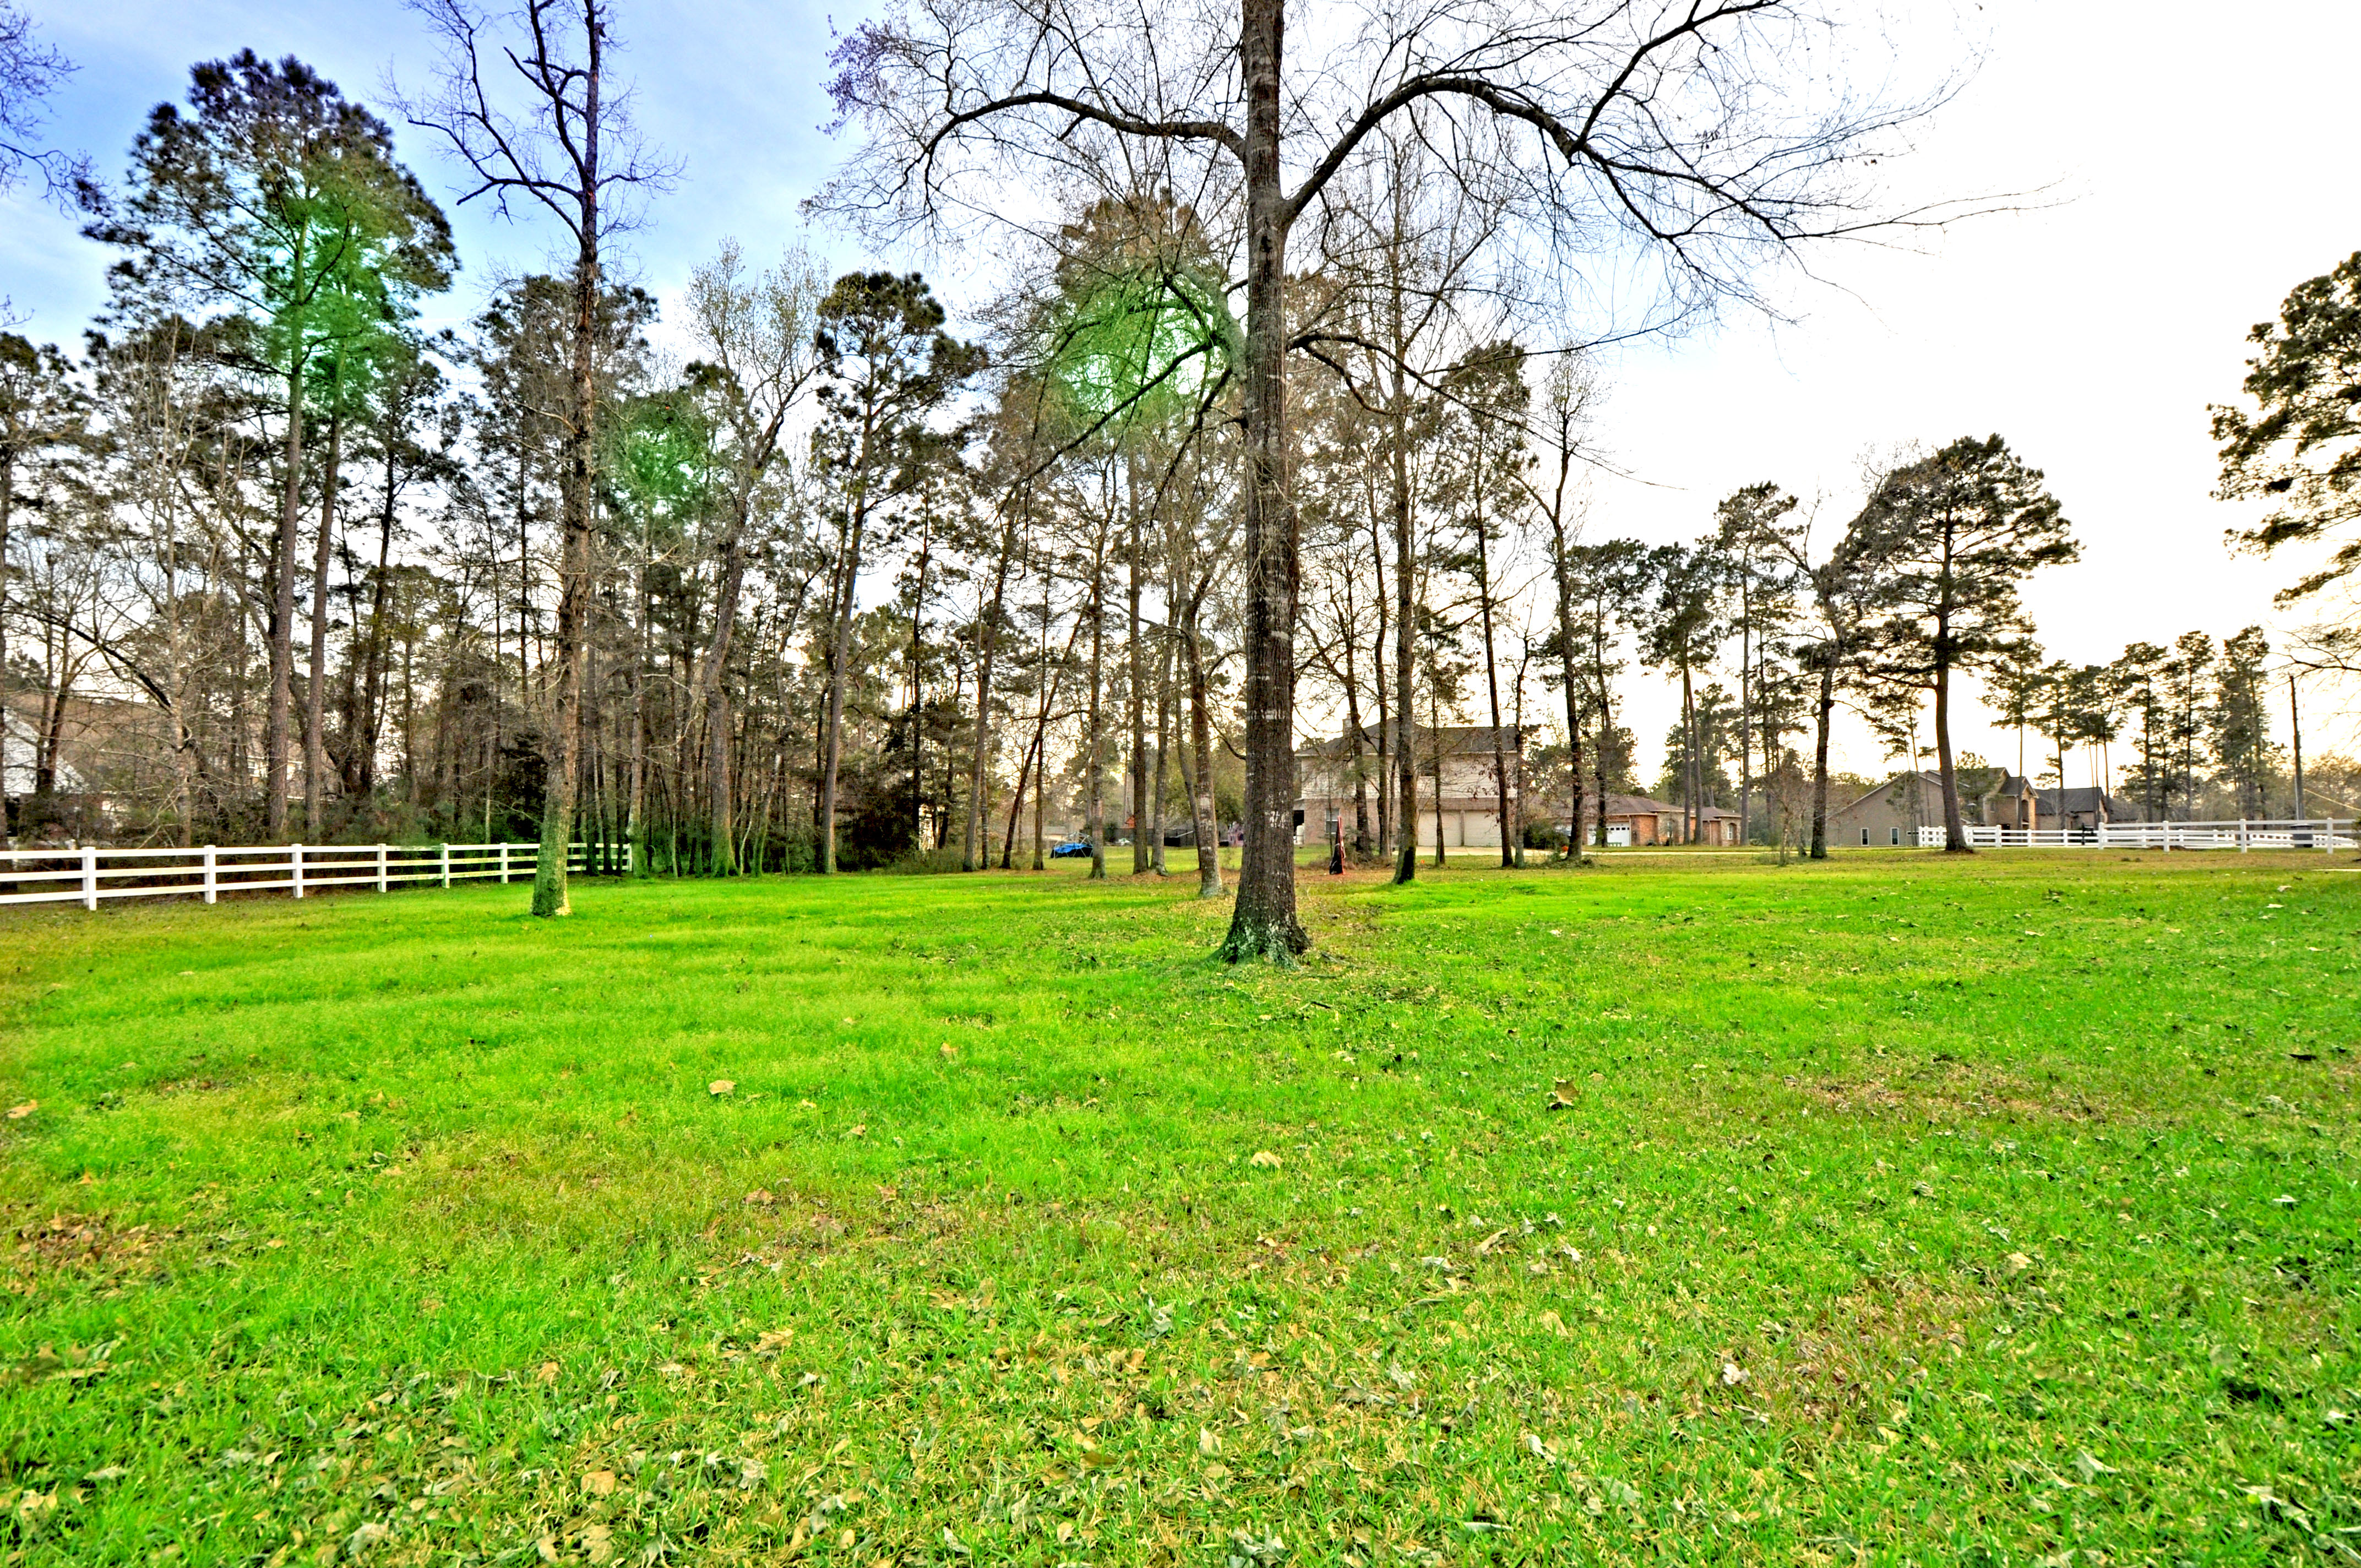 Property sits on one acre